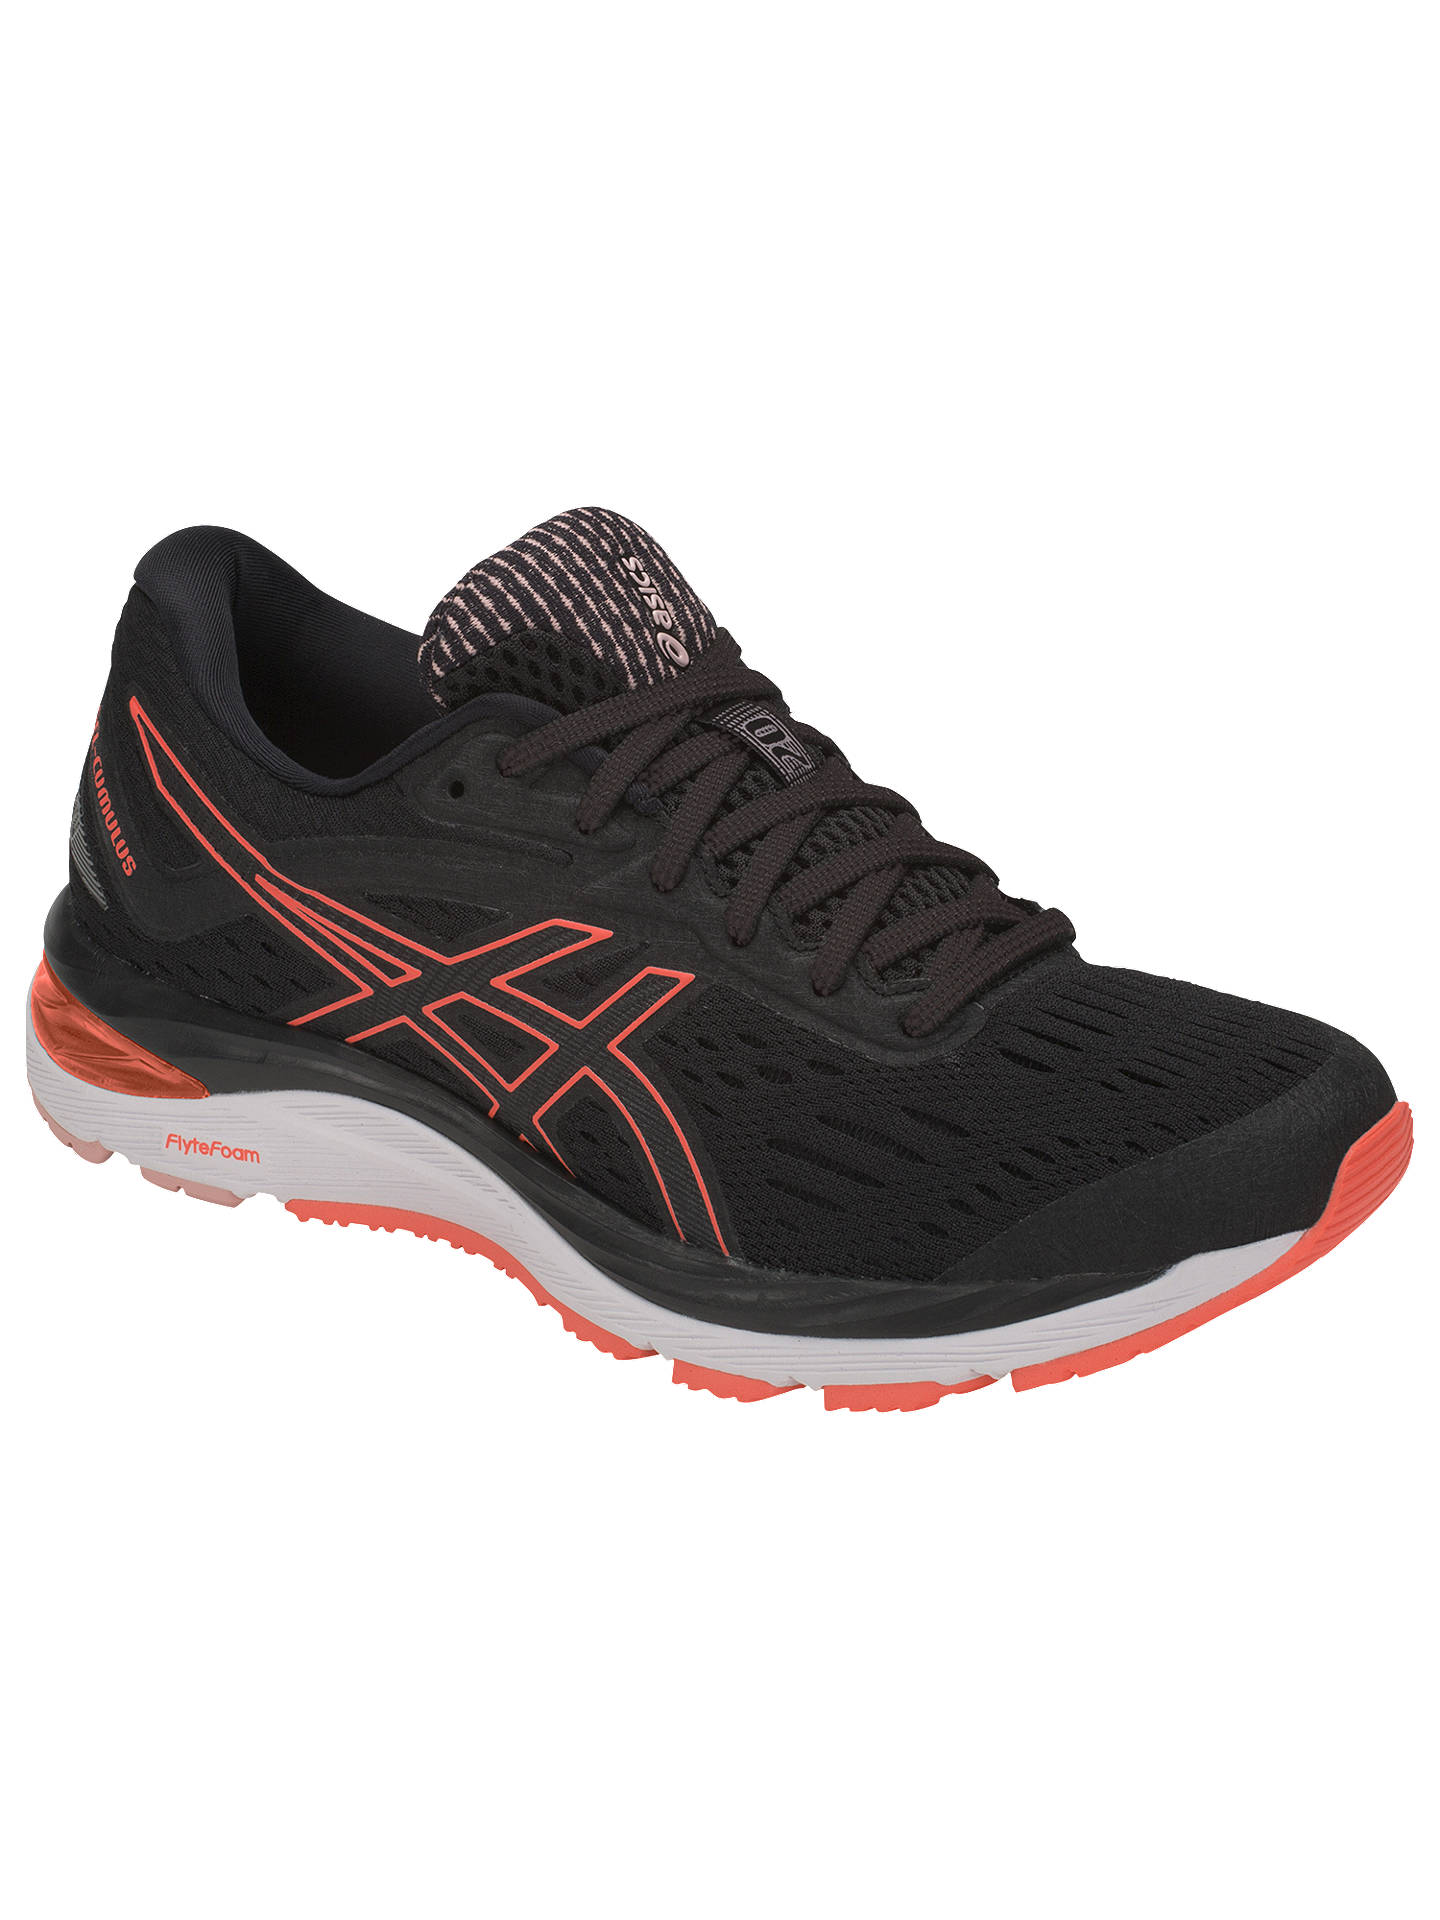 Buy ASICS GEL-CUMULUS 19 Women's Running Shoes, Black/Flash Coral, 4 Online at johnlewis.com